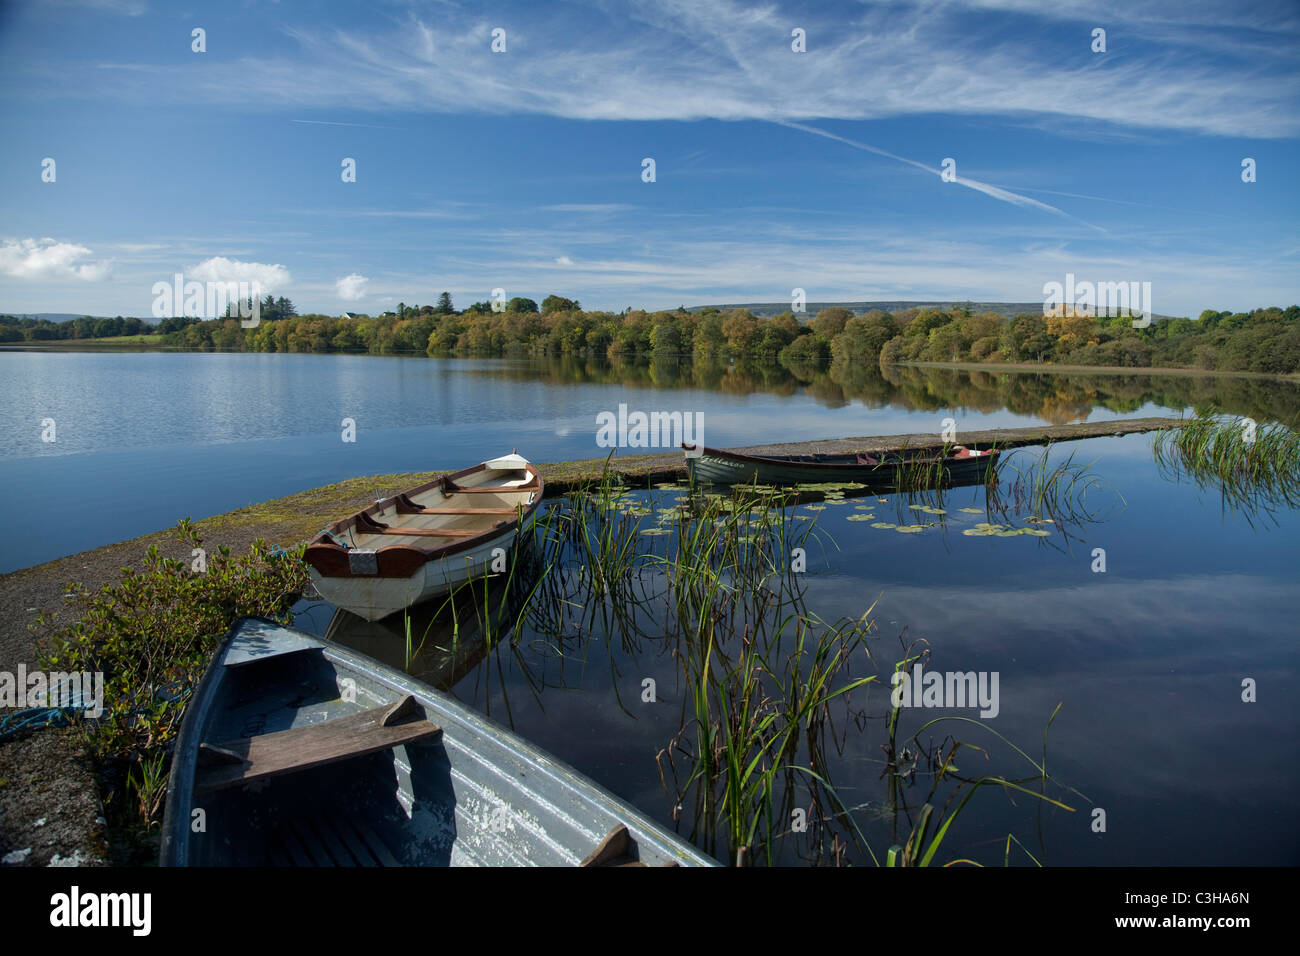 Angelboote/Fischerboote in Lough Arrow, County Sligo, Irland. Stockbild